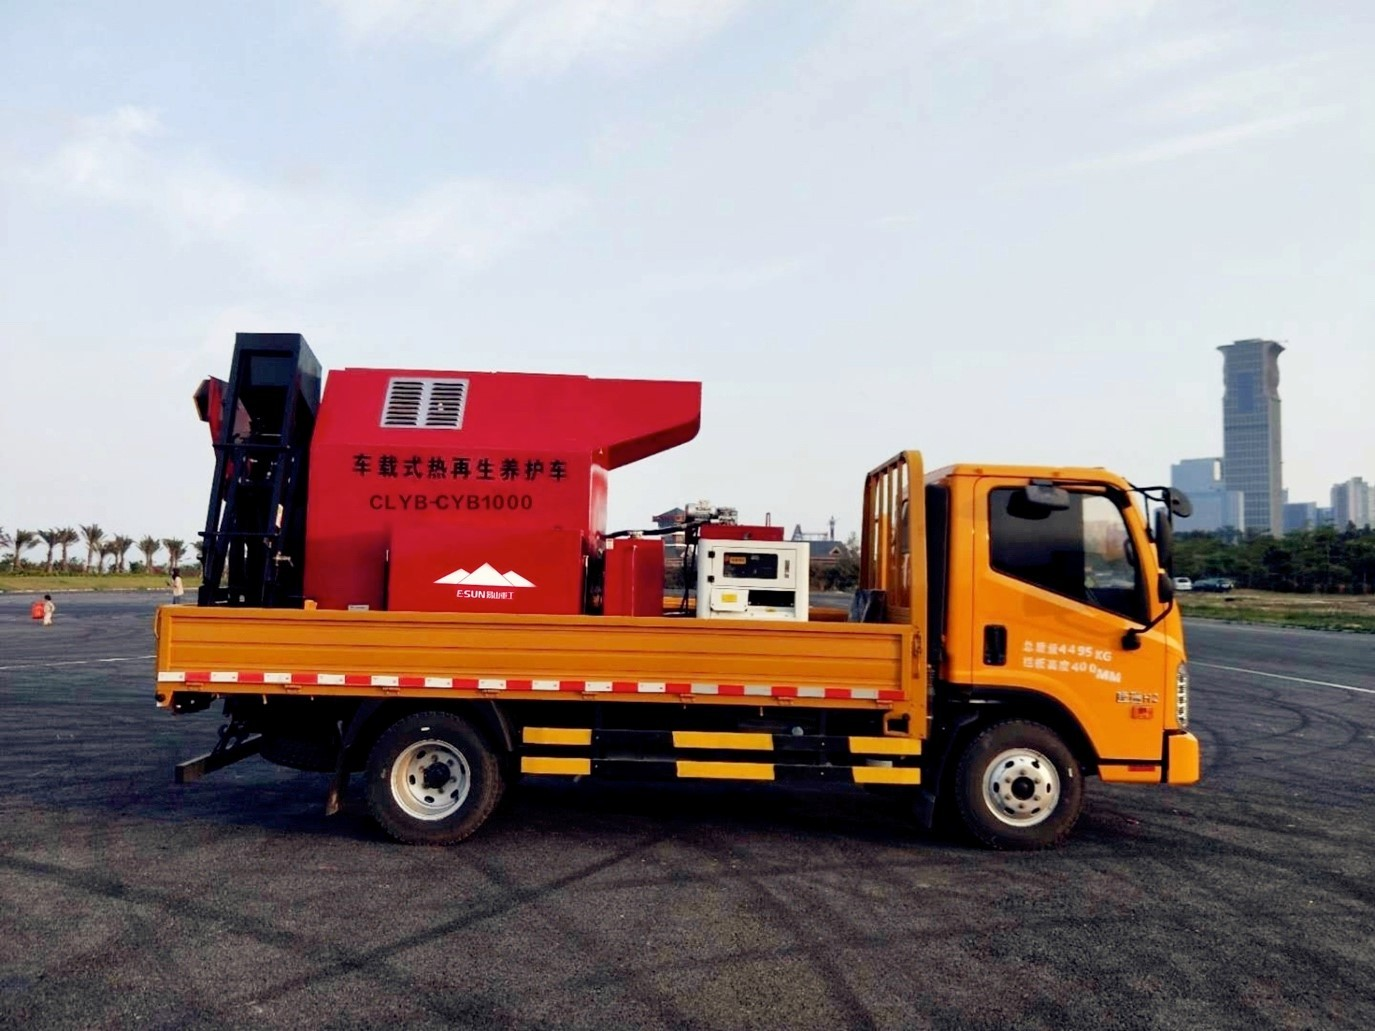 asphalt reclaimer for asphalt pavement roads repairment